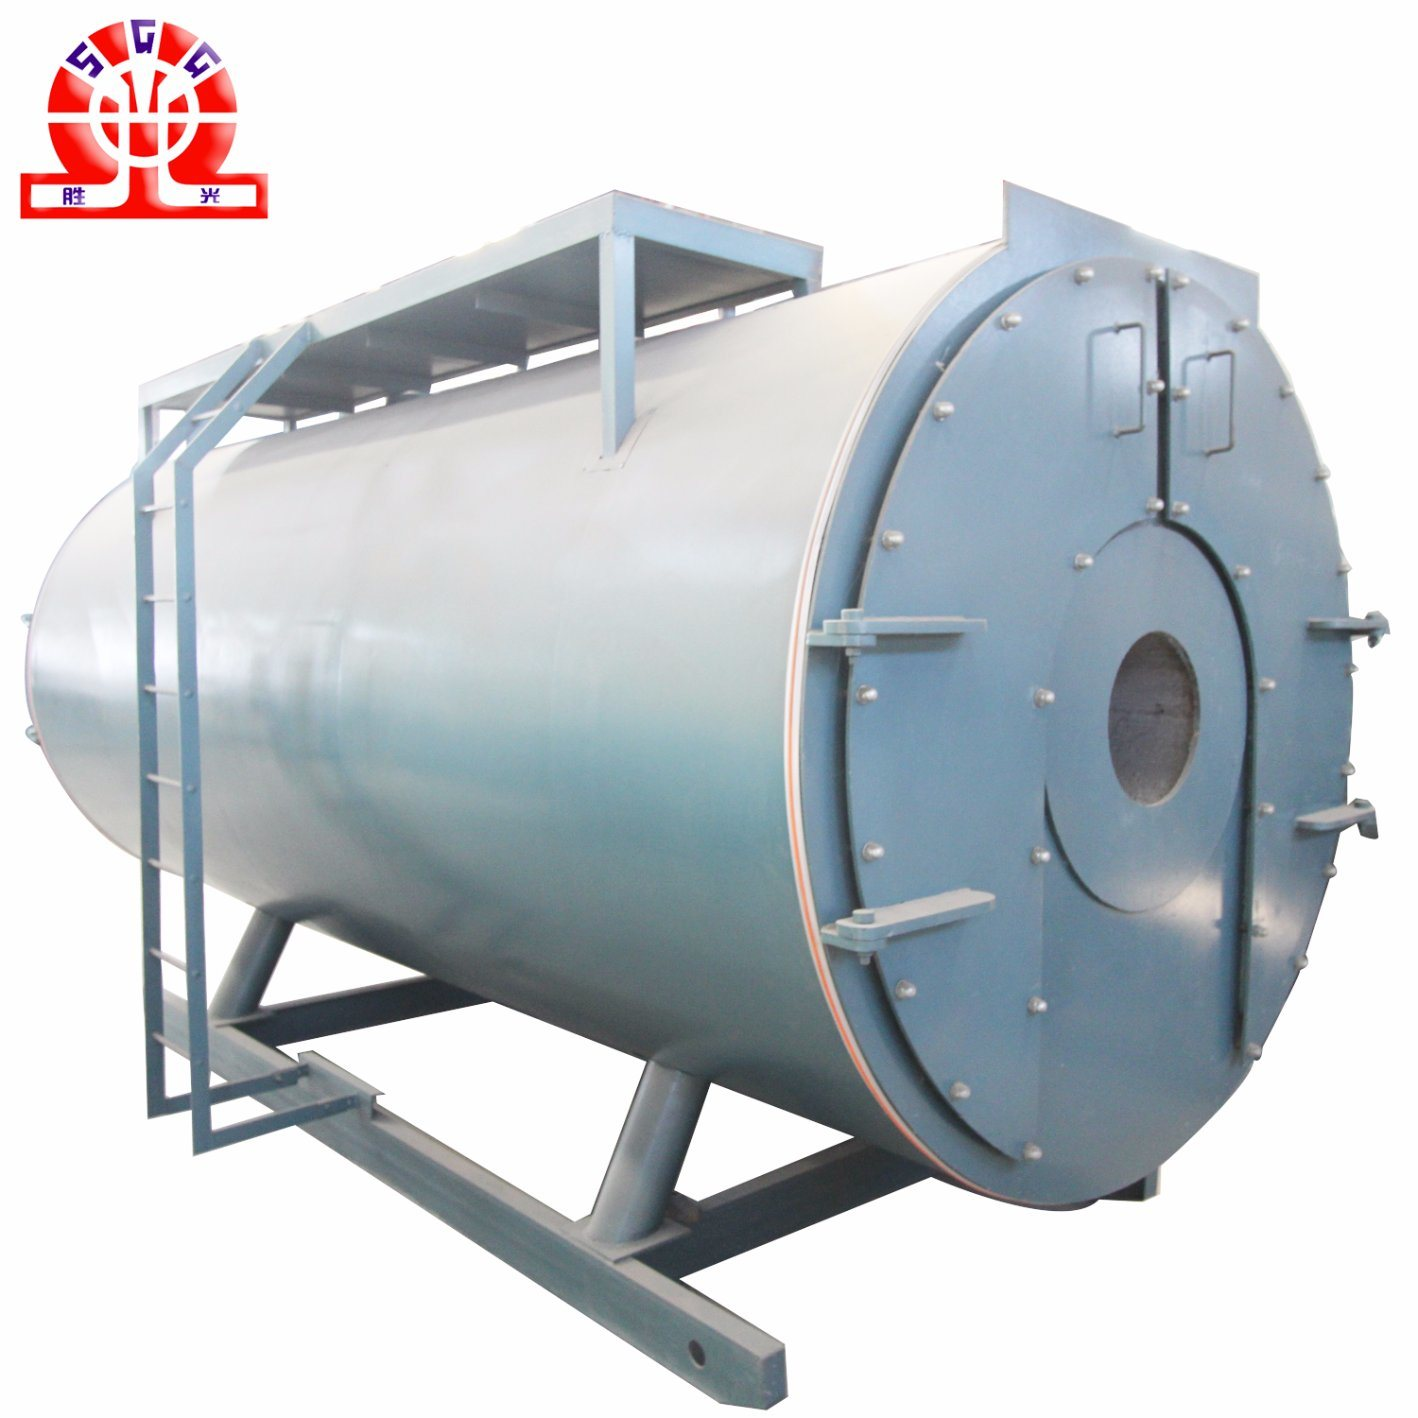 China 4 Ton Oil Fired Steam Boiler for Turkey Market Photos ...